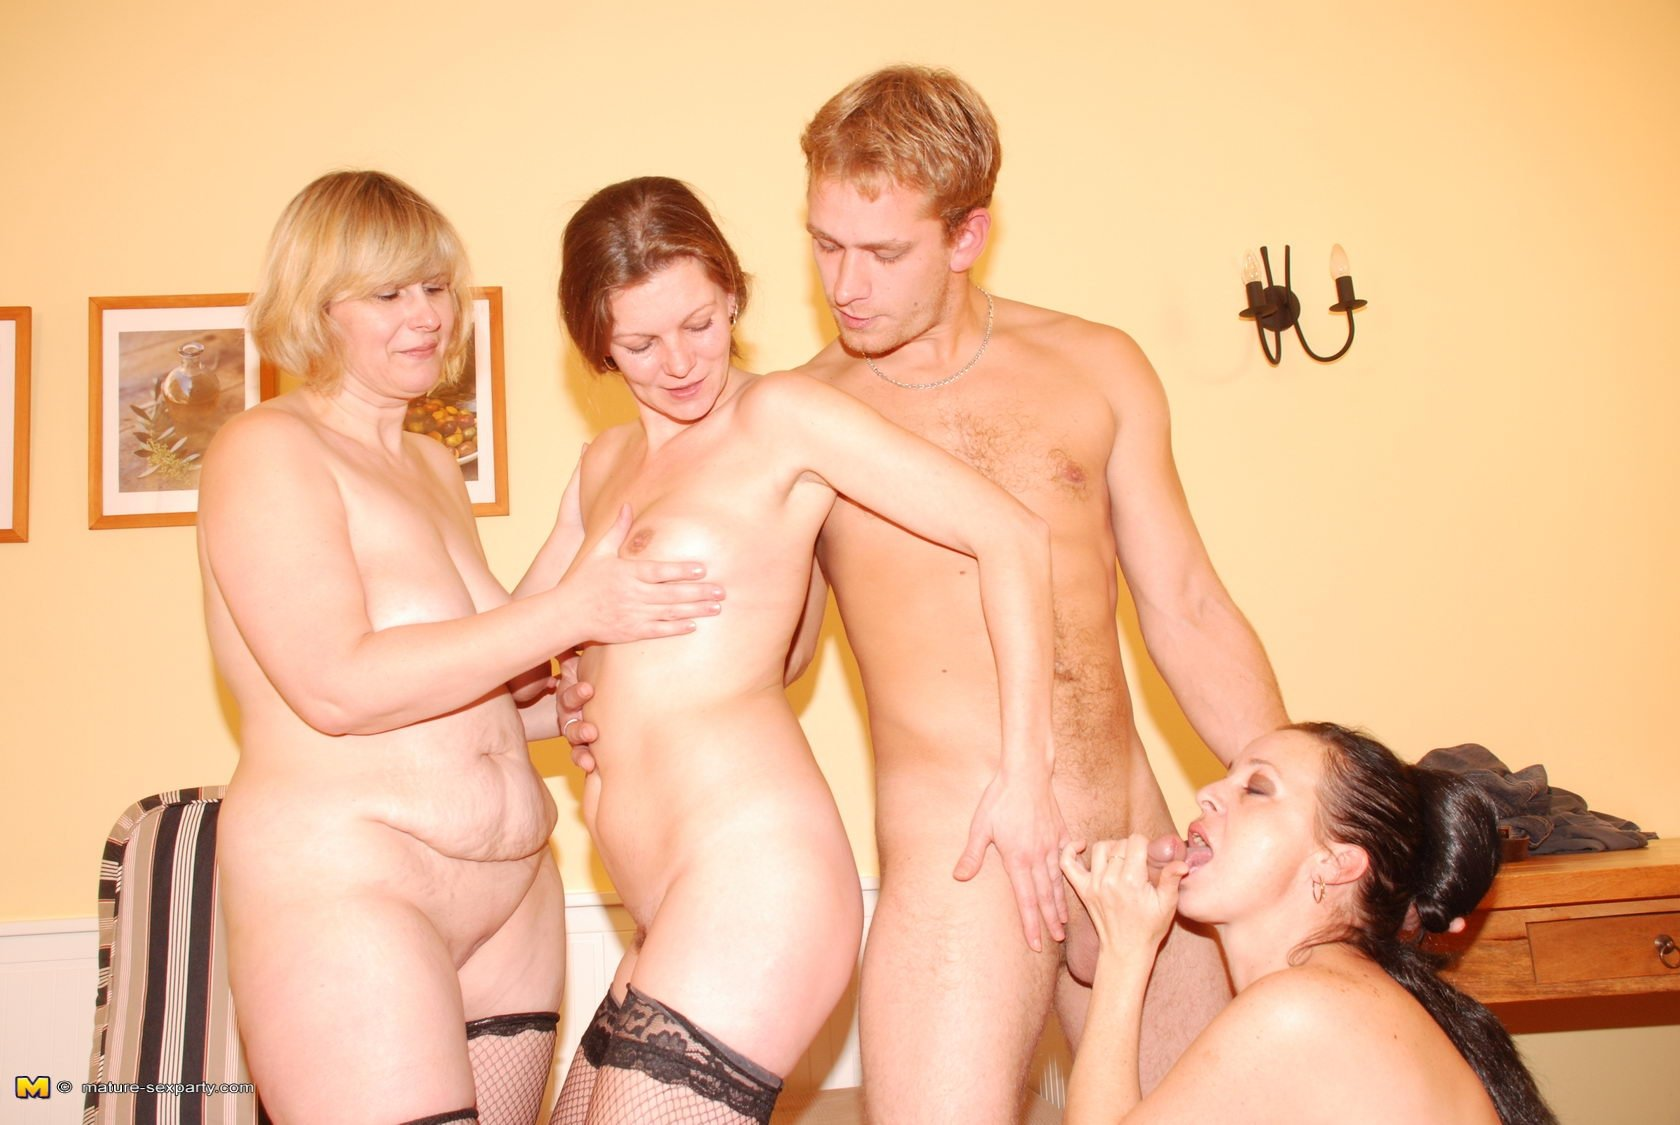 Mature nudes sex parties